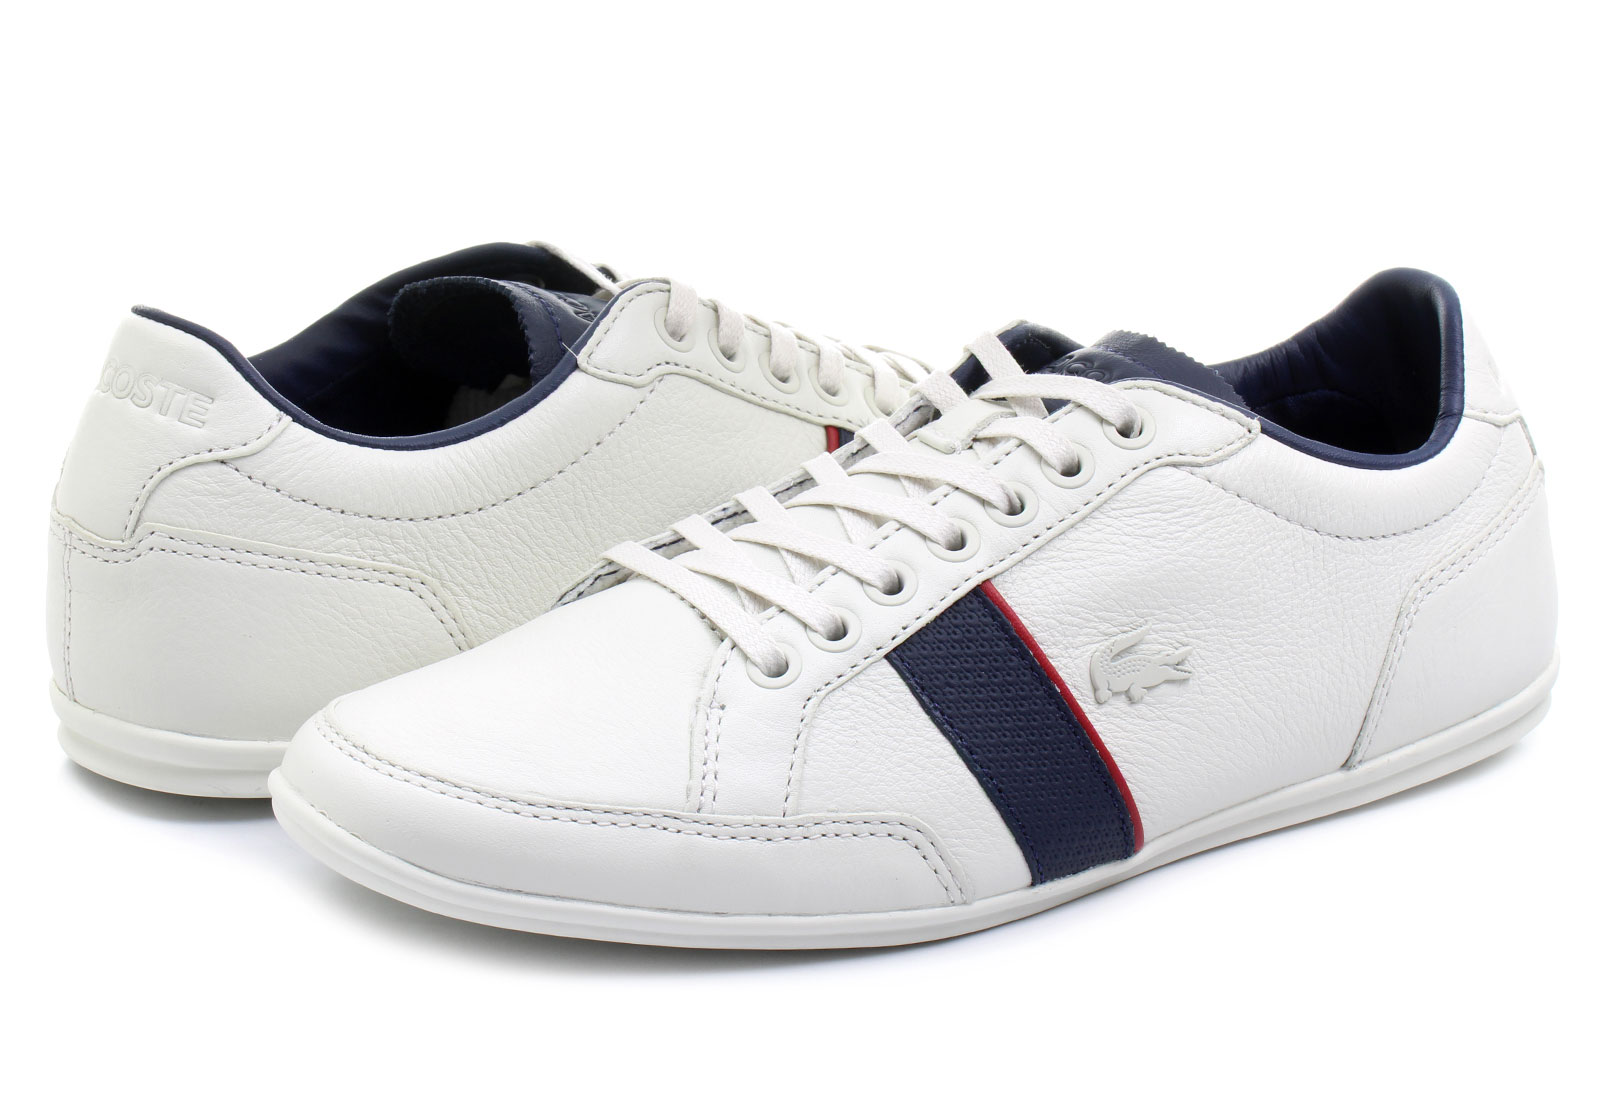 New Model Lacoste Shoes